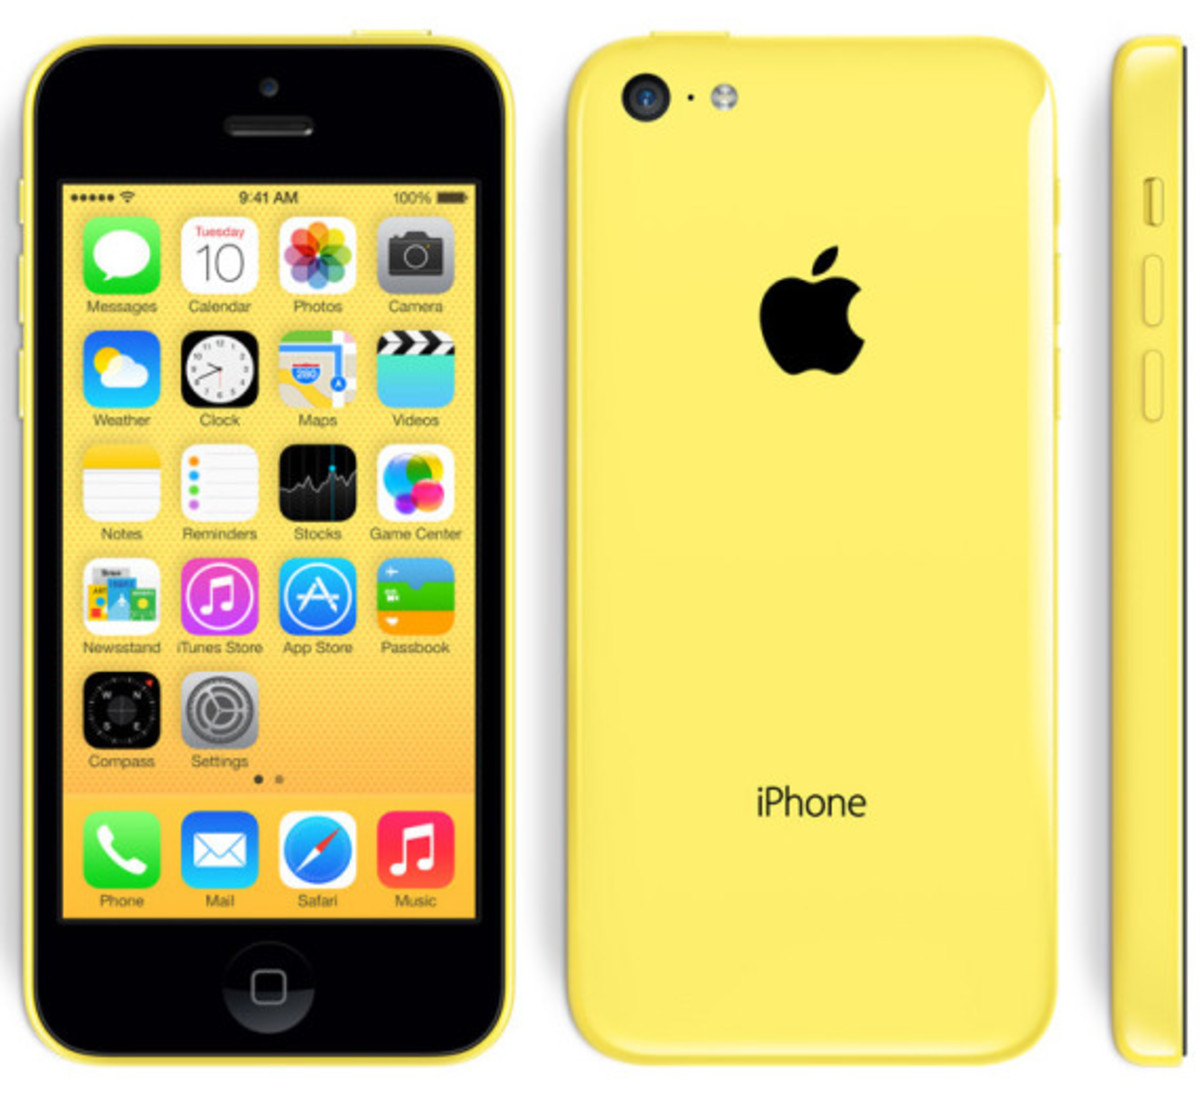 Apple iPhone 5C - Officially Unveiled - 14